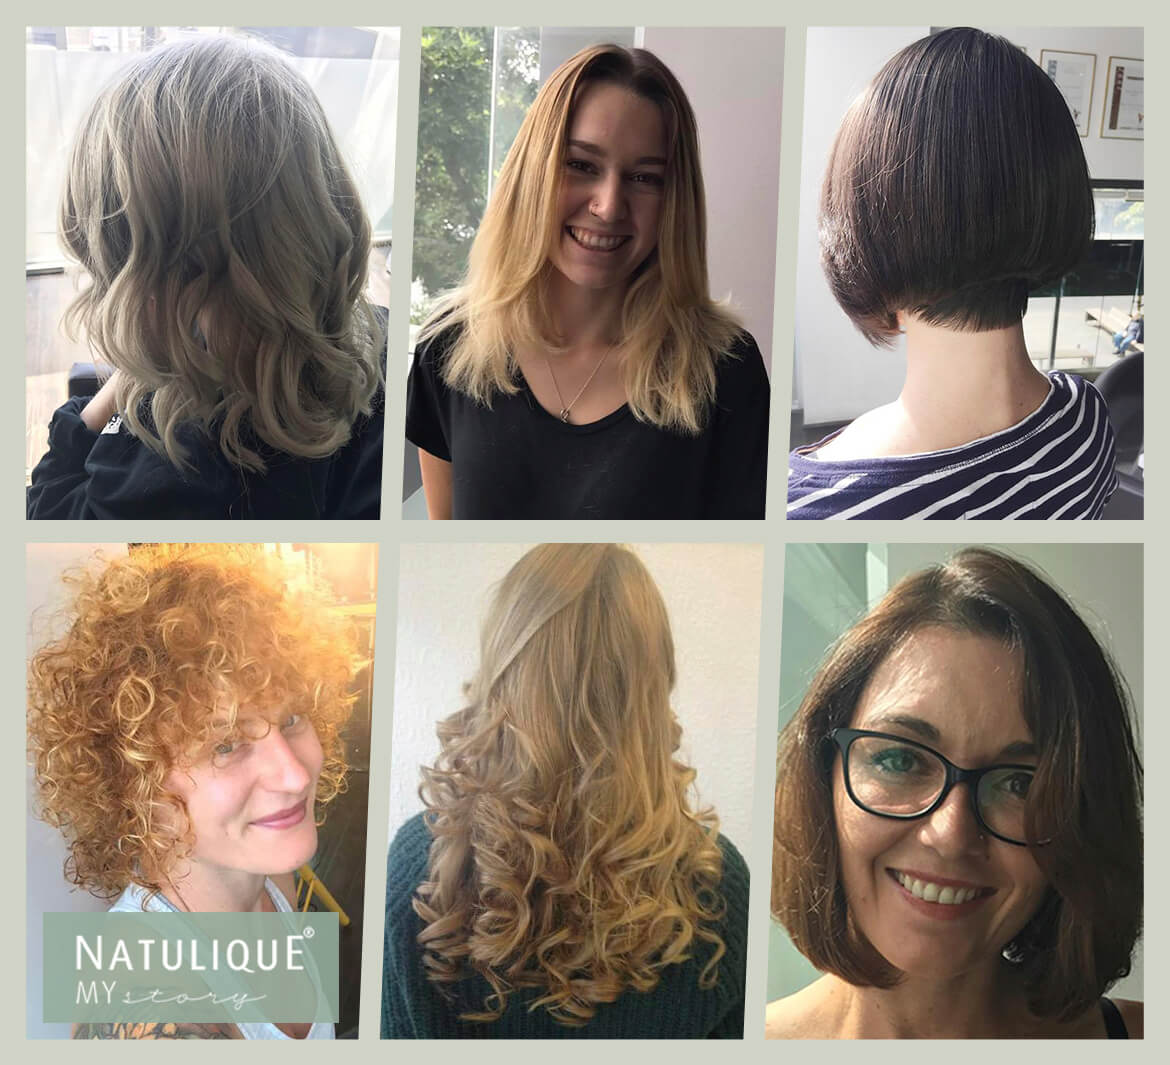 NATULIQUE Hair Colour review